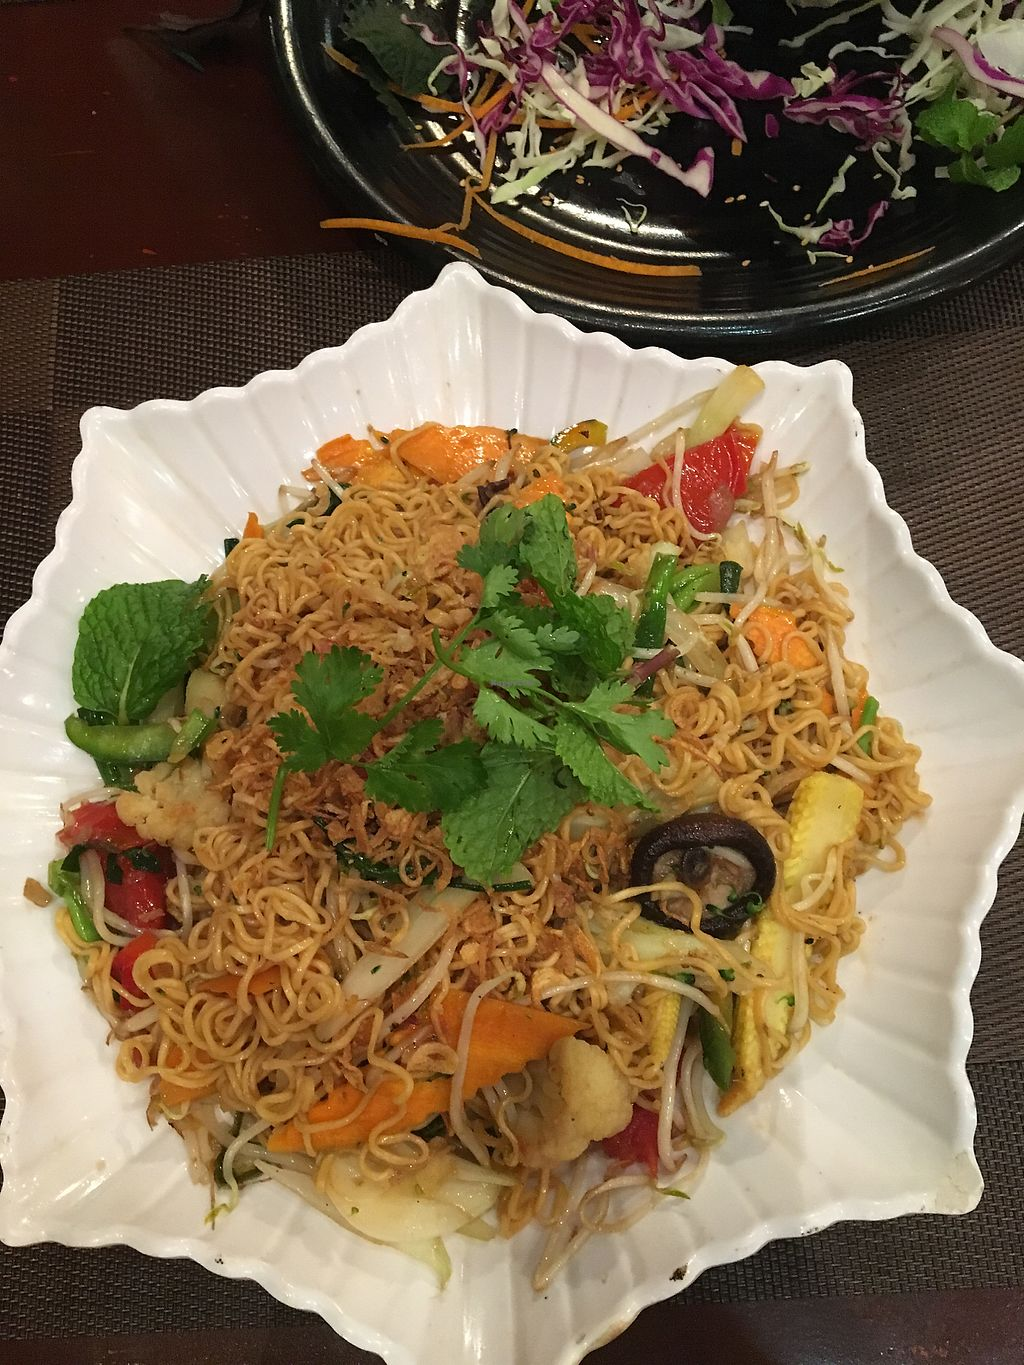 """Photo of Green Farm  by <a href=""""/members/profile/TaylorKingham"""">TaylorKingham</a> <br/>Veg noodles  <br/> April 5, 2018  - <a href='/contact/abuse/image/116426/381125'>Report</a>"""